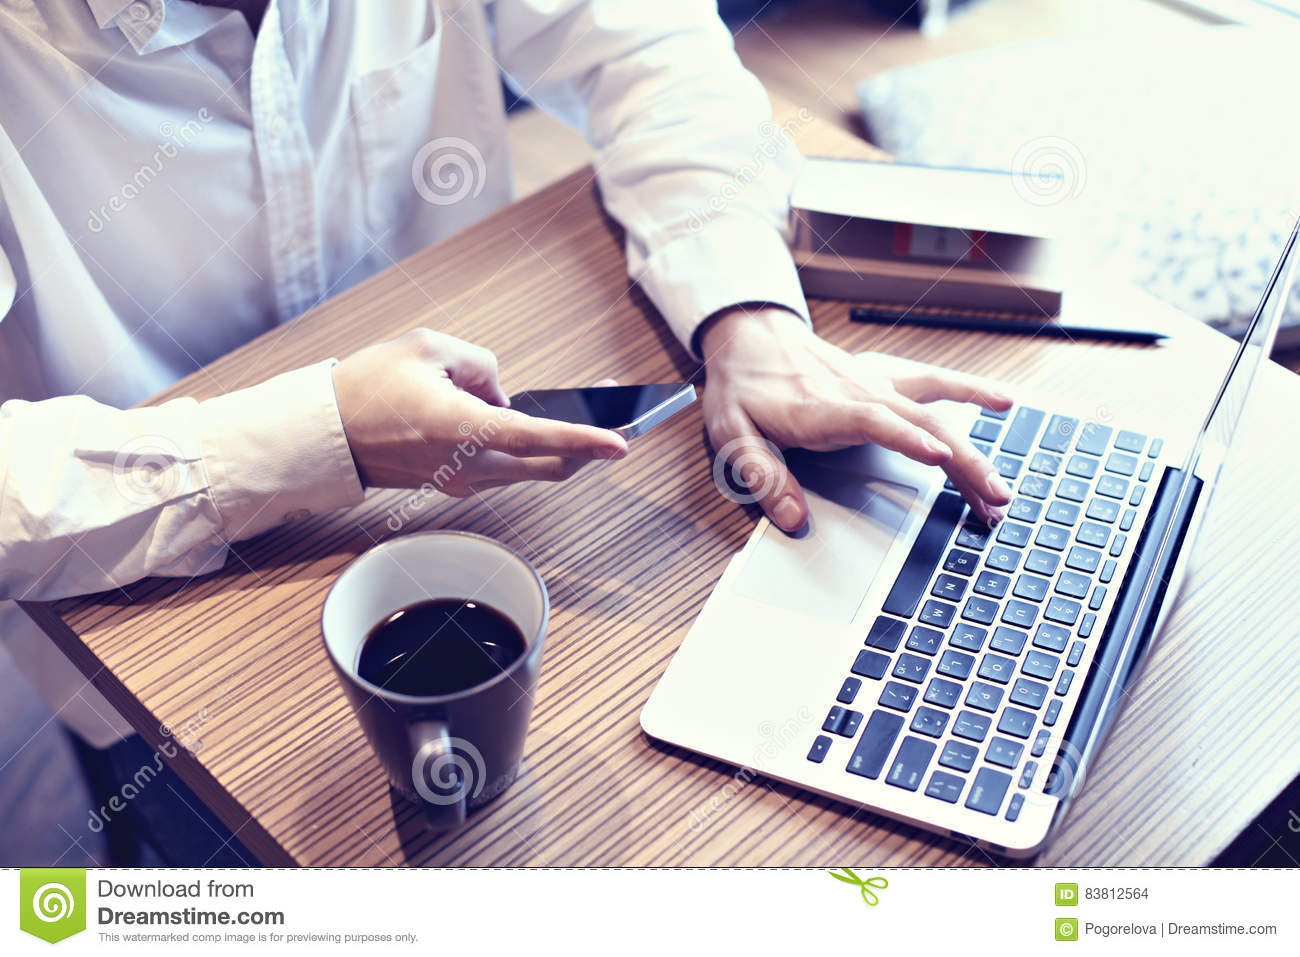 accounting-business-man-use-laptop-computer-mobile-phone-cafe-writing-business-plan-drinking-coffee-coffee-83812564.jpg